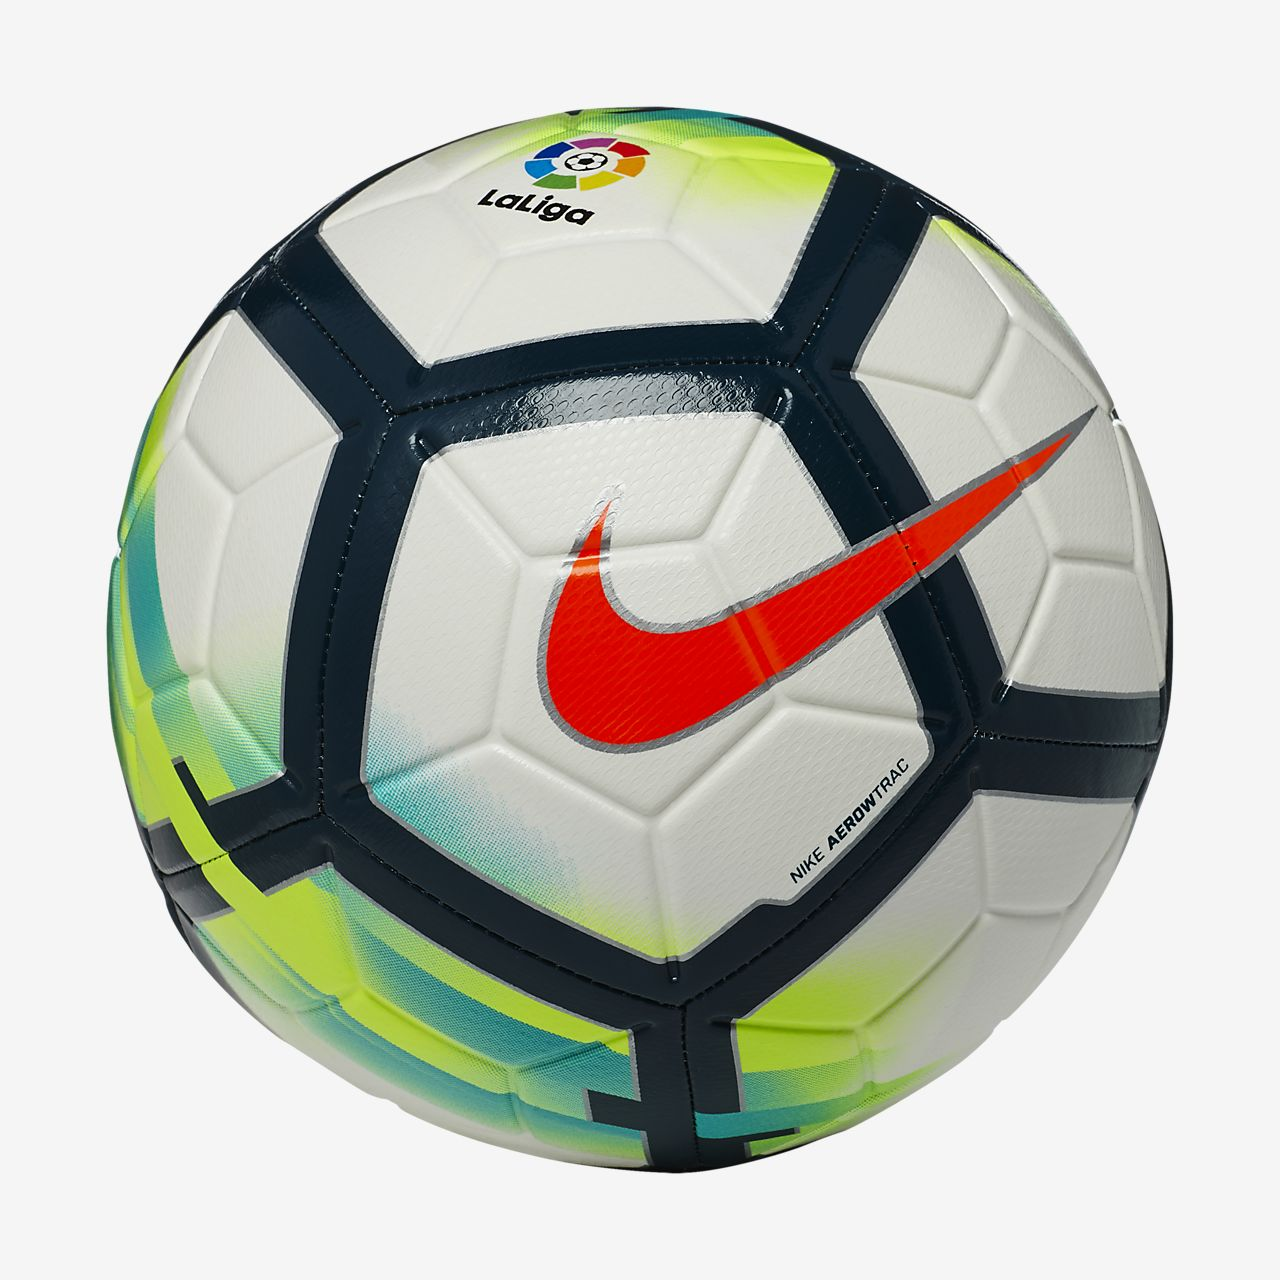 Nike strike la liga football nike lu nike strike la liga football stopboris Gallery